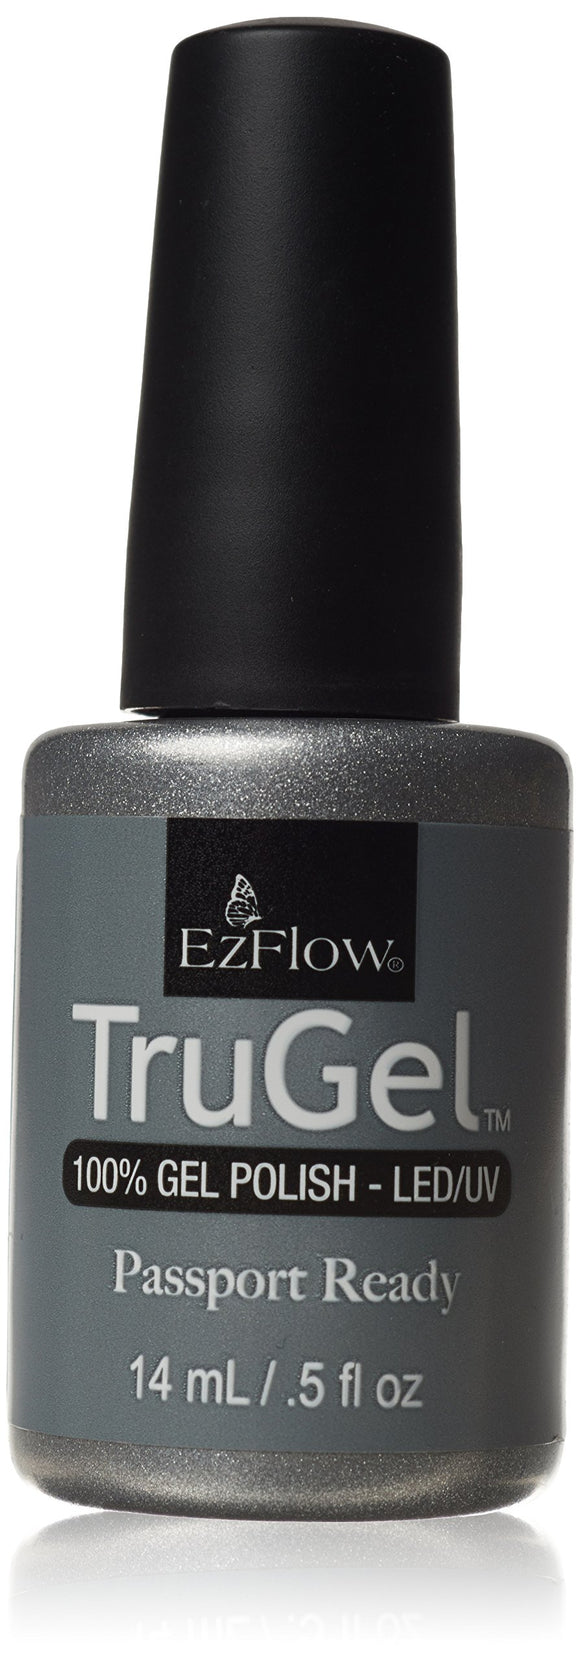 Ez Flow TruGel LED/UV Gel Polish - 14 mL (Passport Ready - EZTG42328)